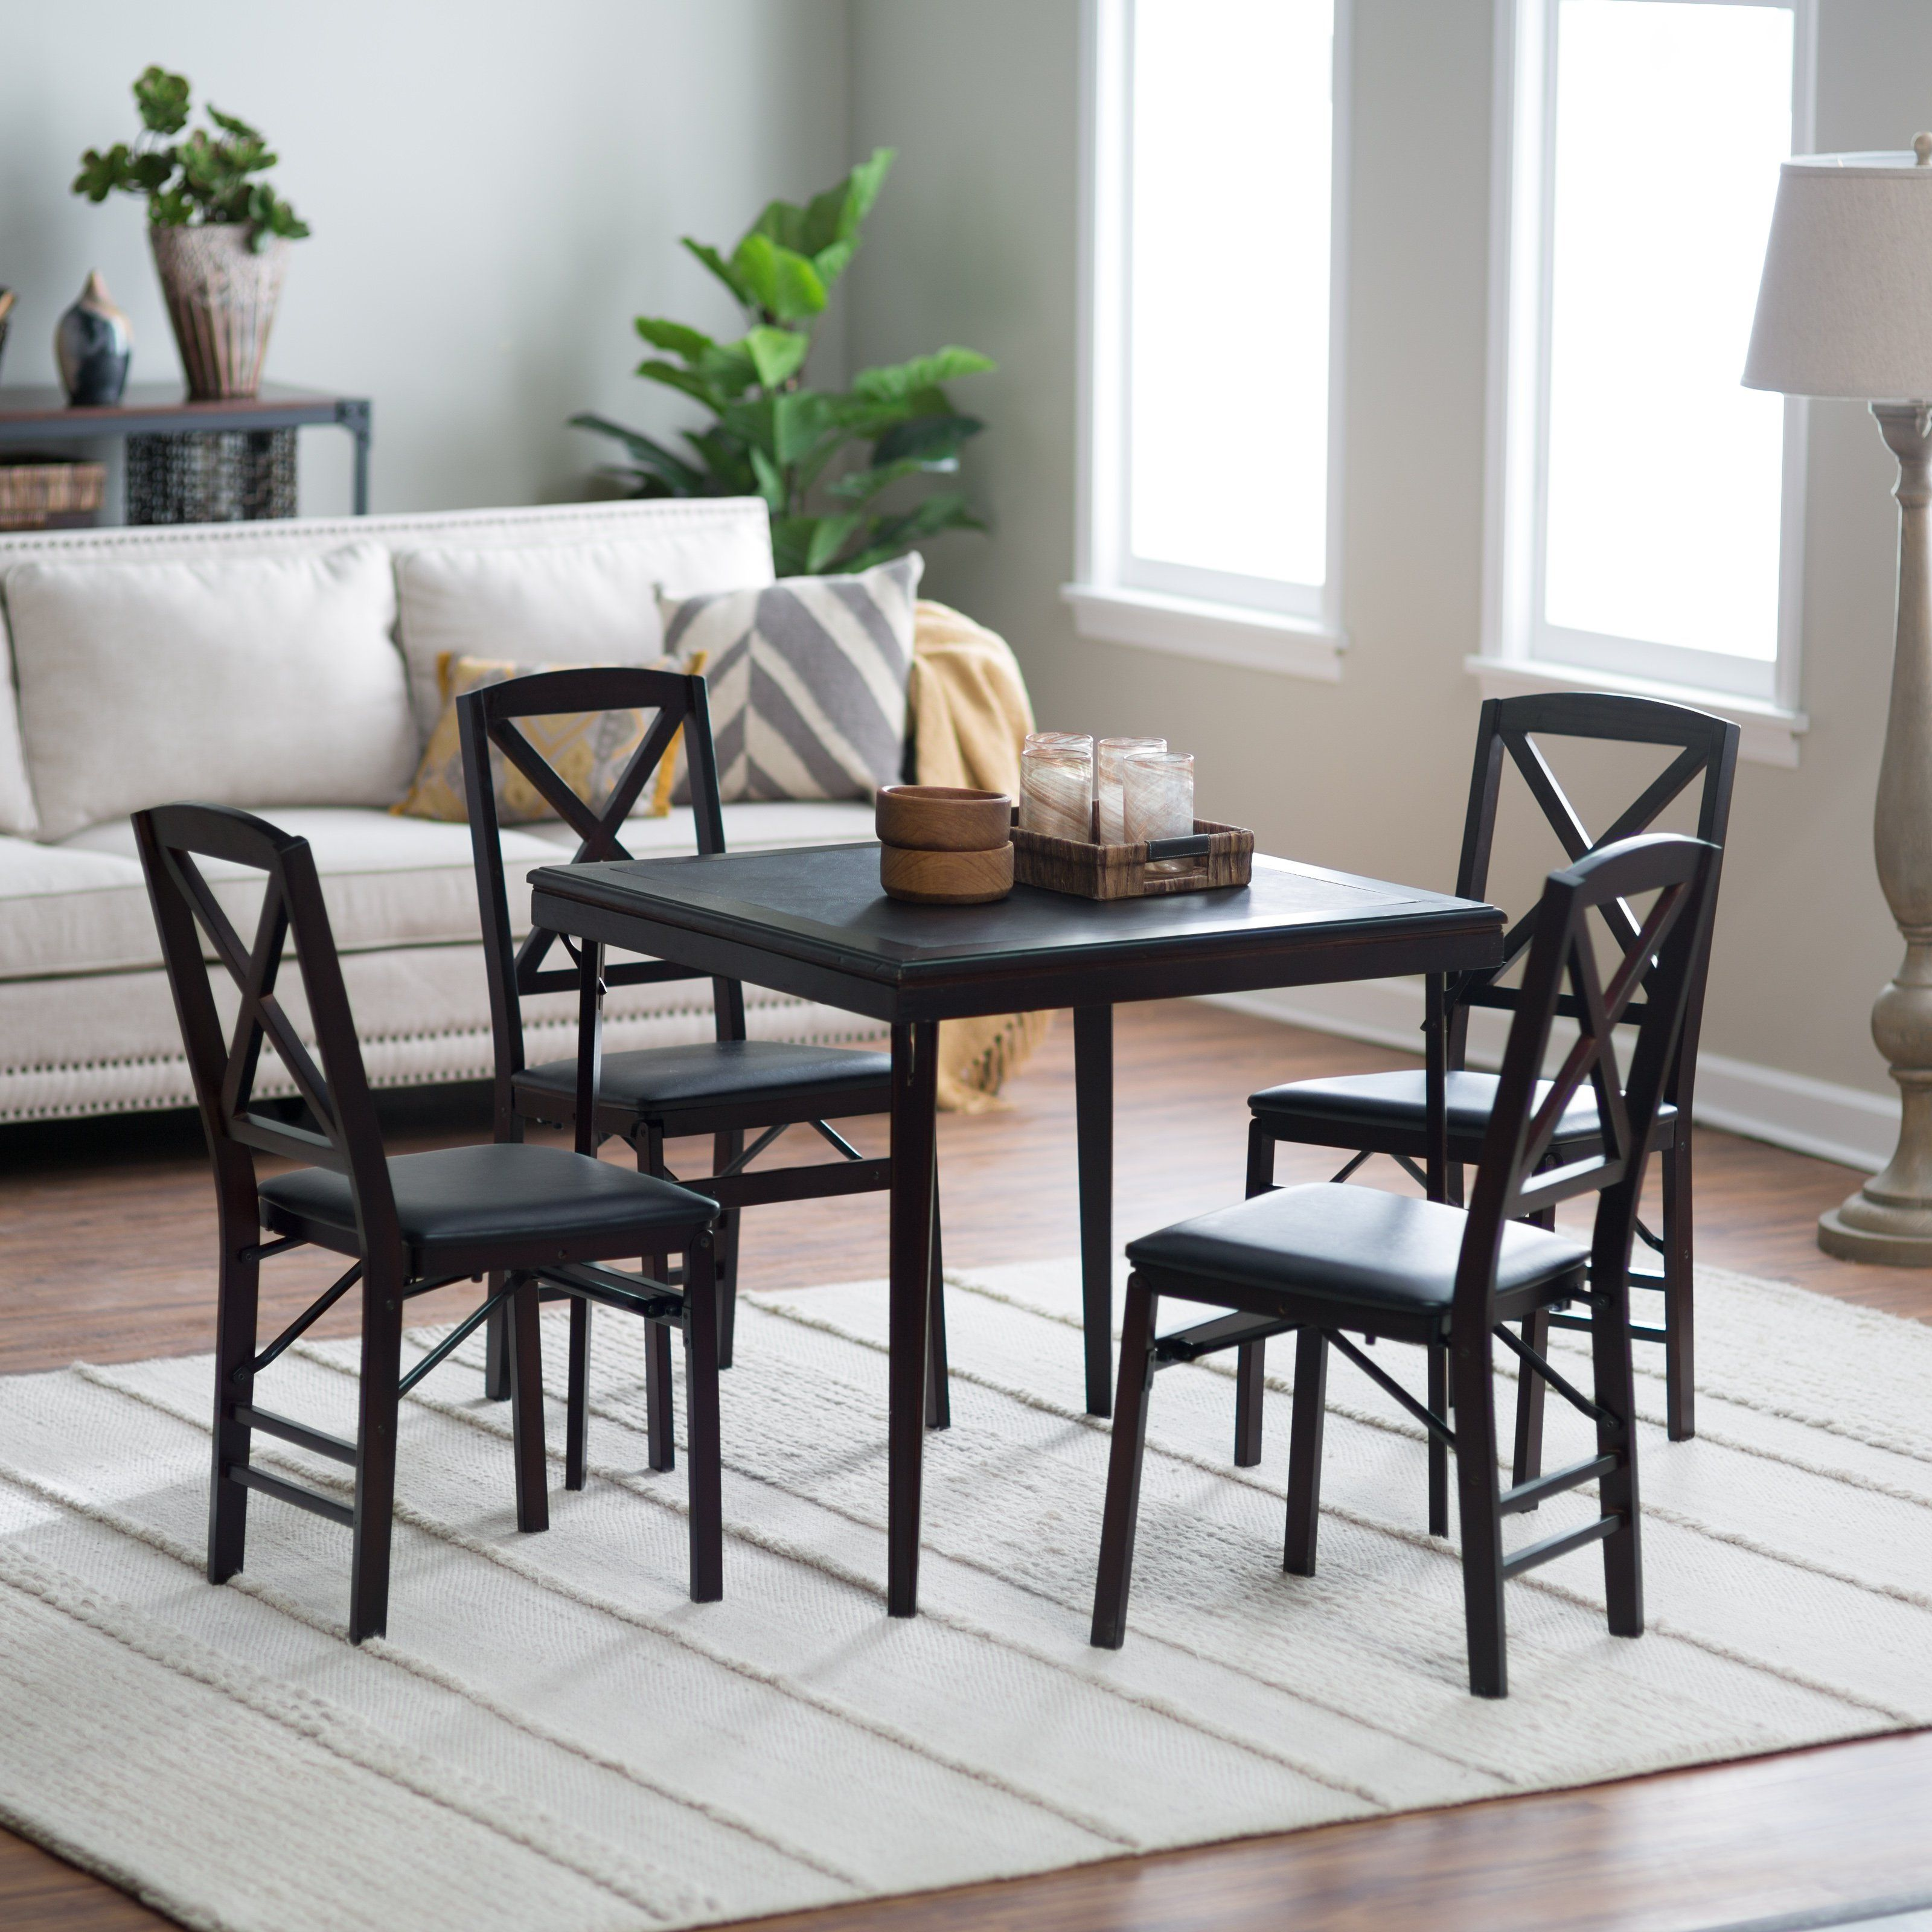 Cosco 5 Piece Bridgeport 32 Inch Wood Folding Card Table Set Card Table And Chairs Card Table Set Table And Chair Sets